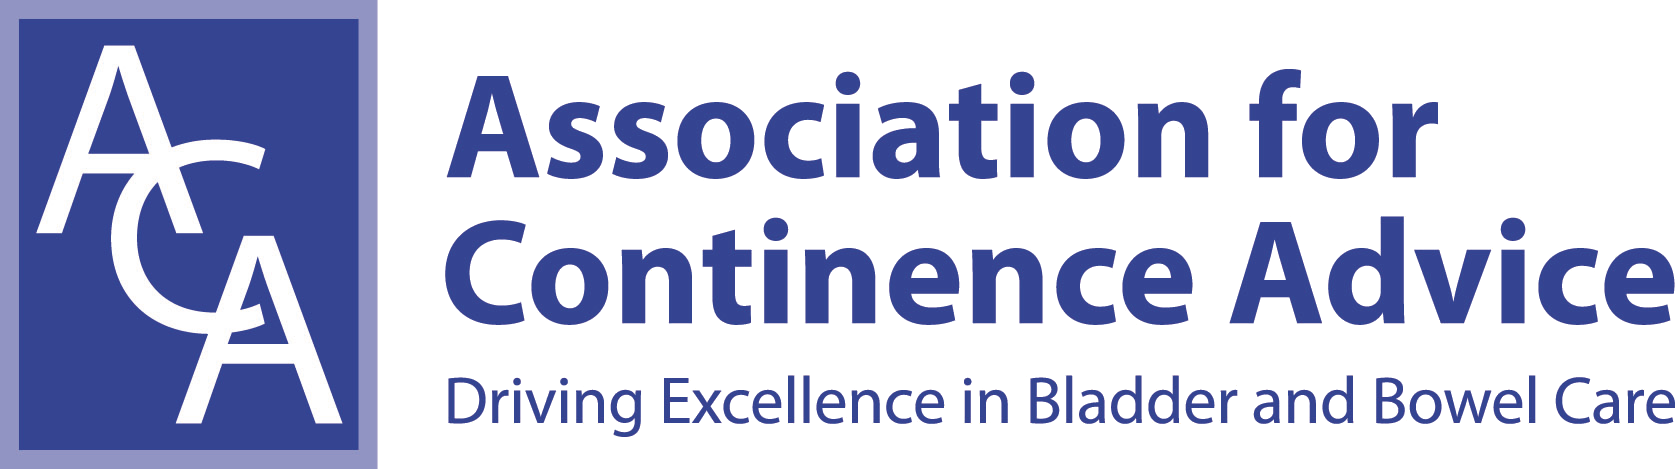 (ACA) Association for Continence Advice